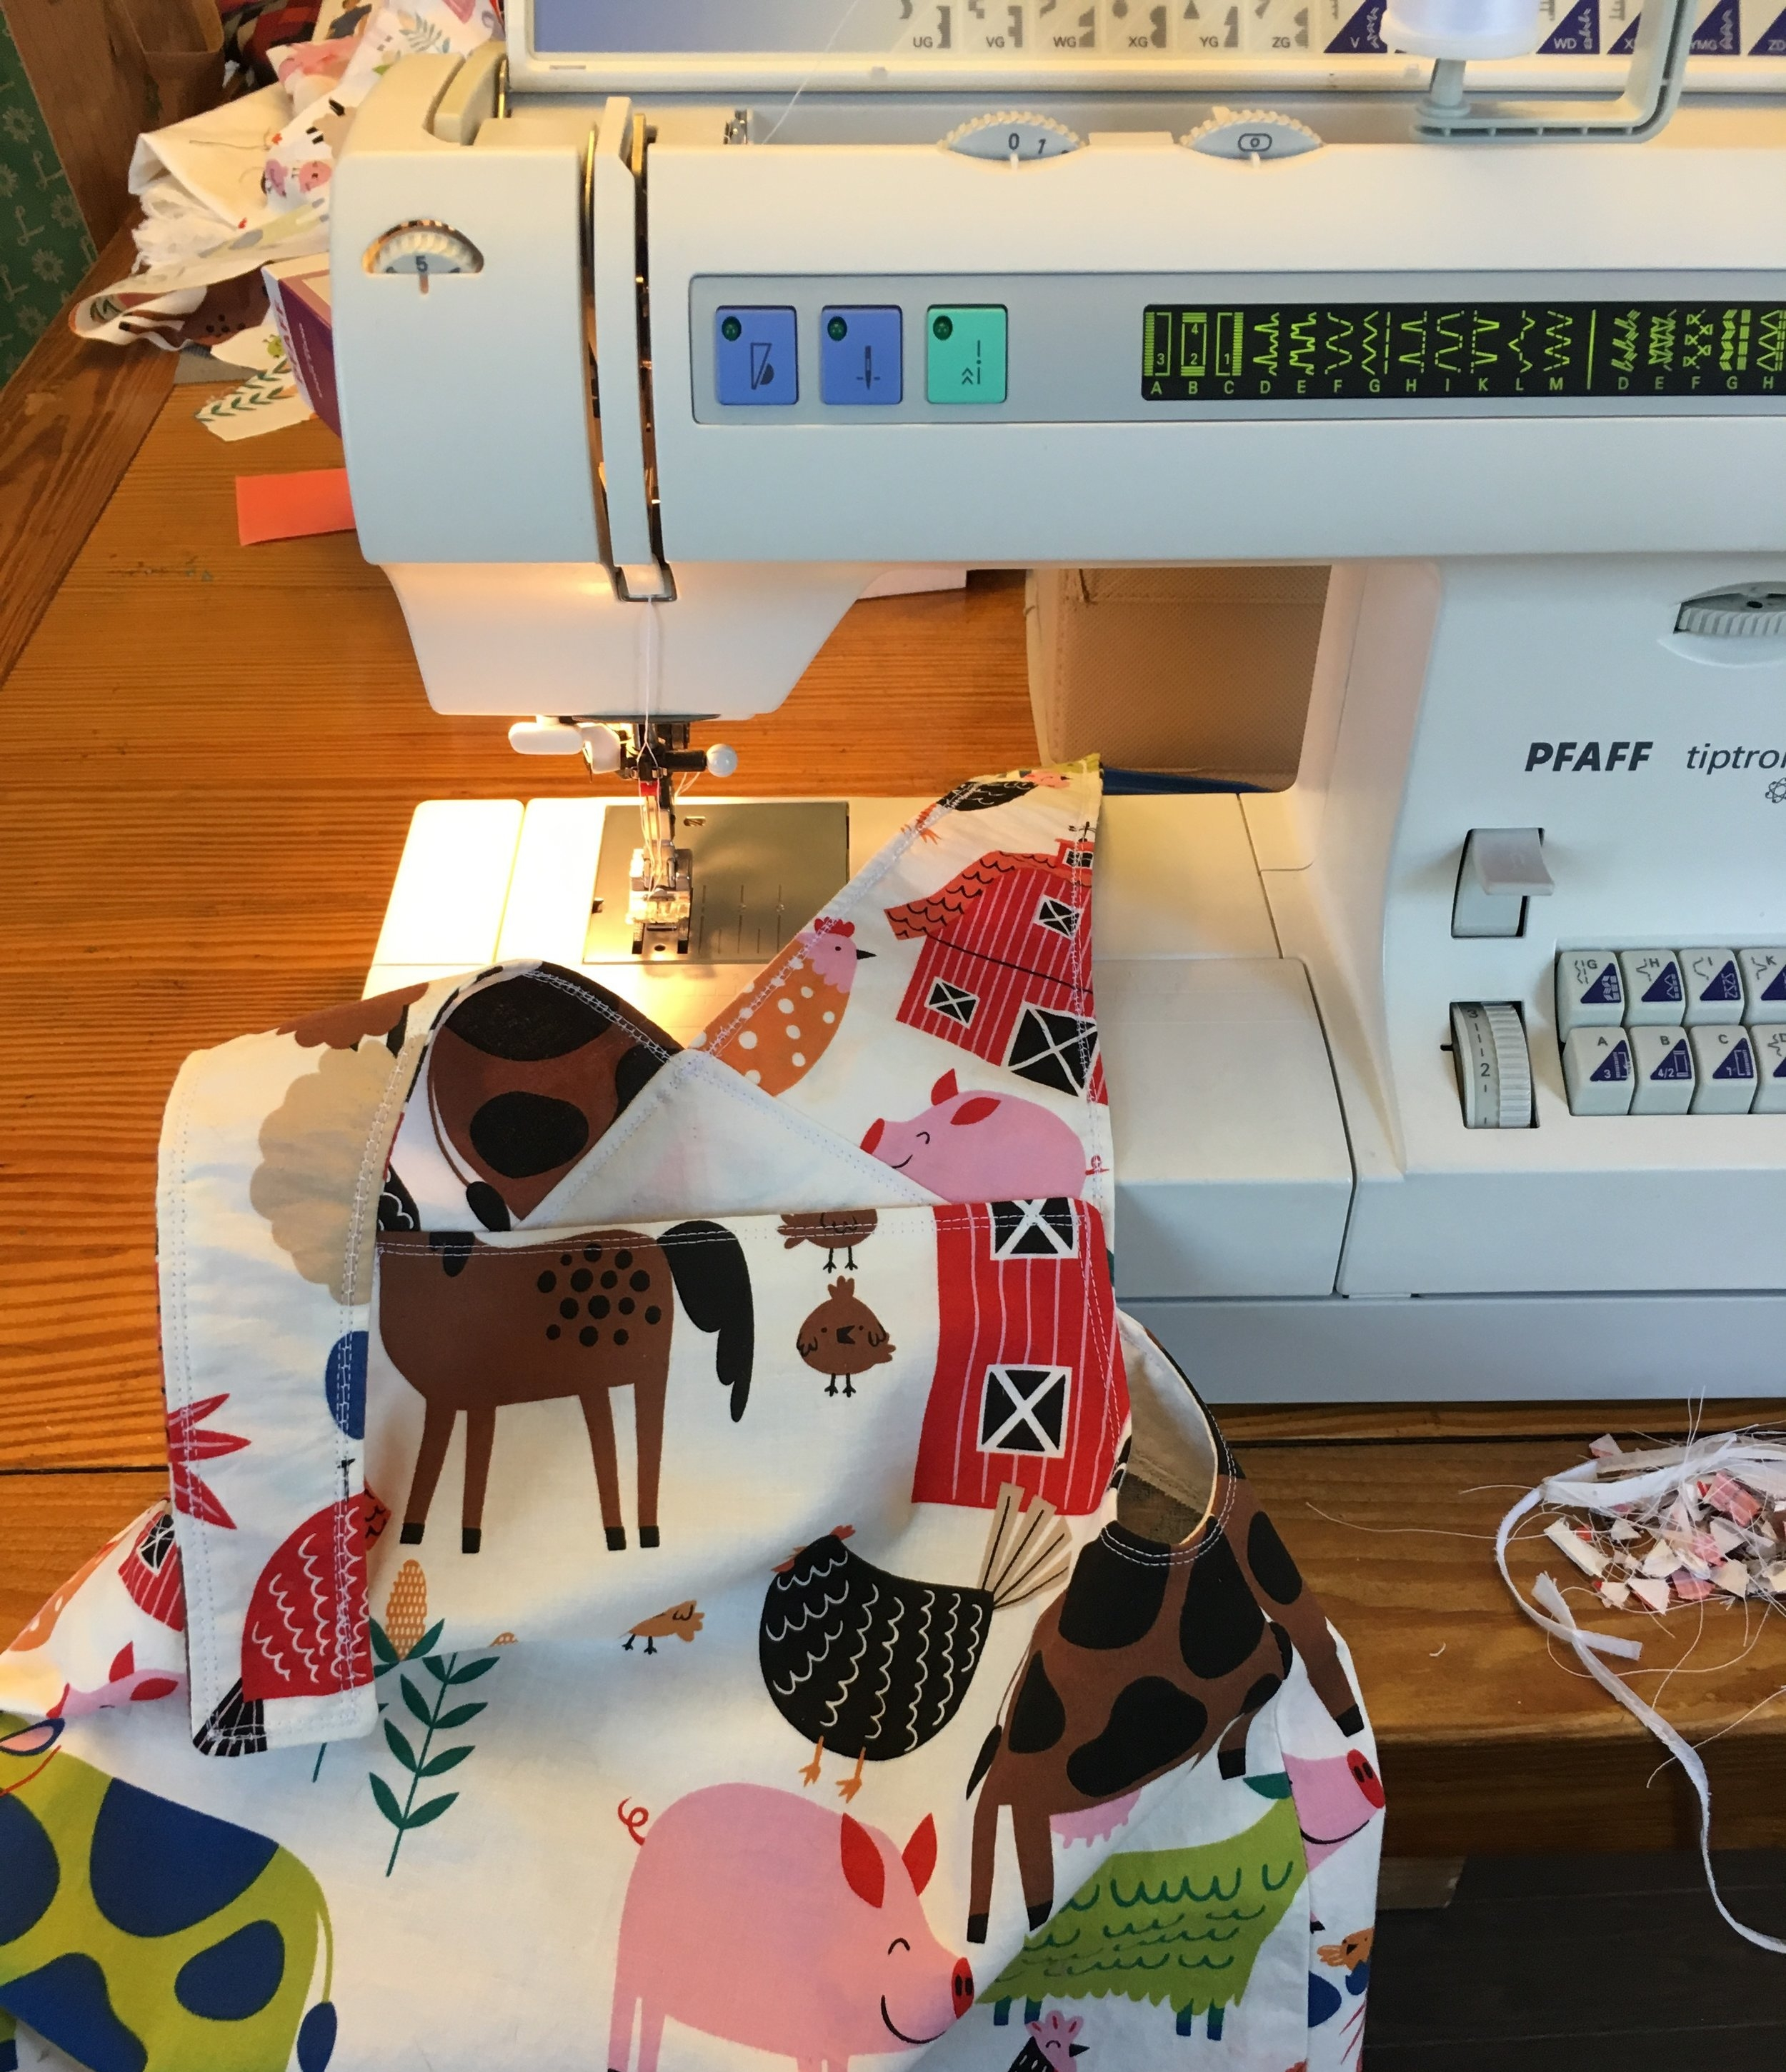 Sewing - I love to sew but don't get to it very often. This was a jumper I made for my niece for Christmas.I hope to have more sewing to post soon.